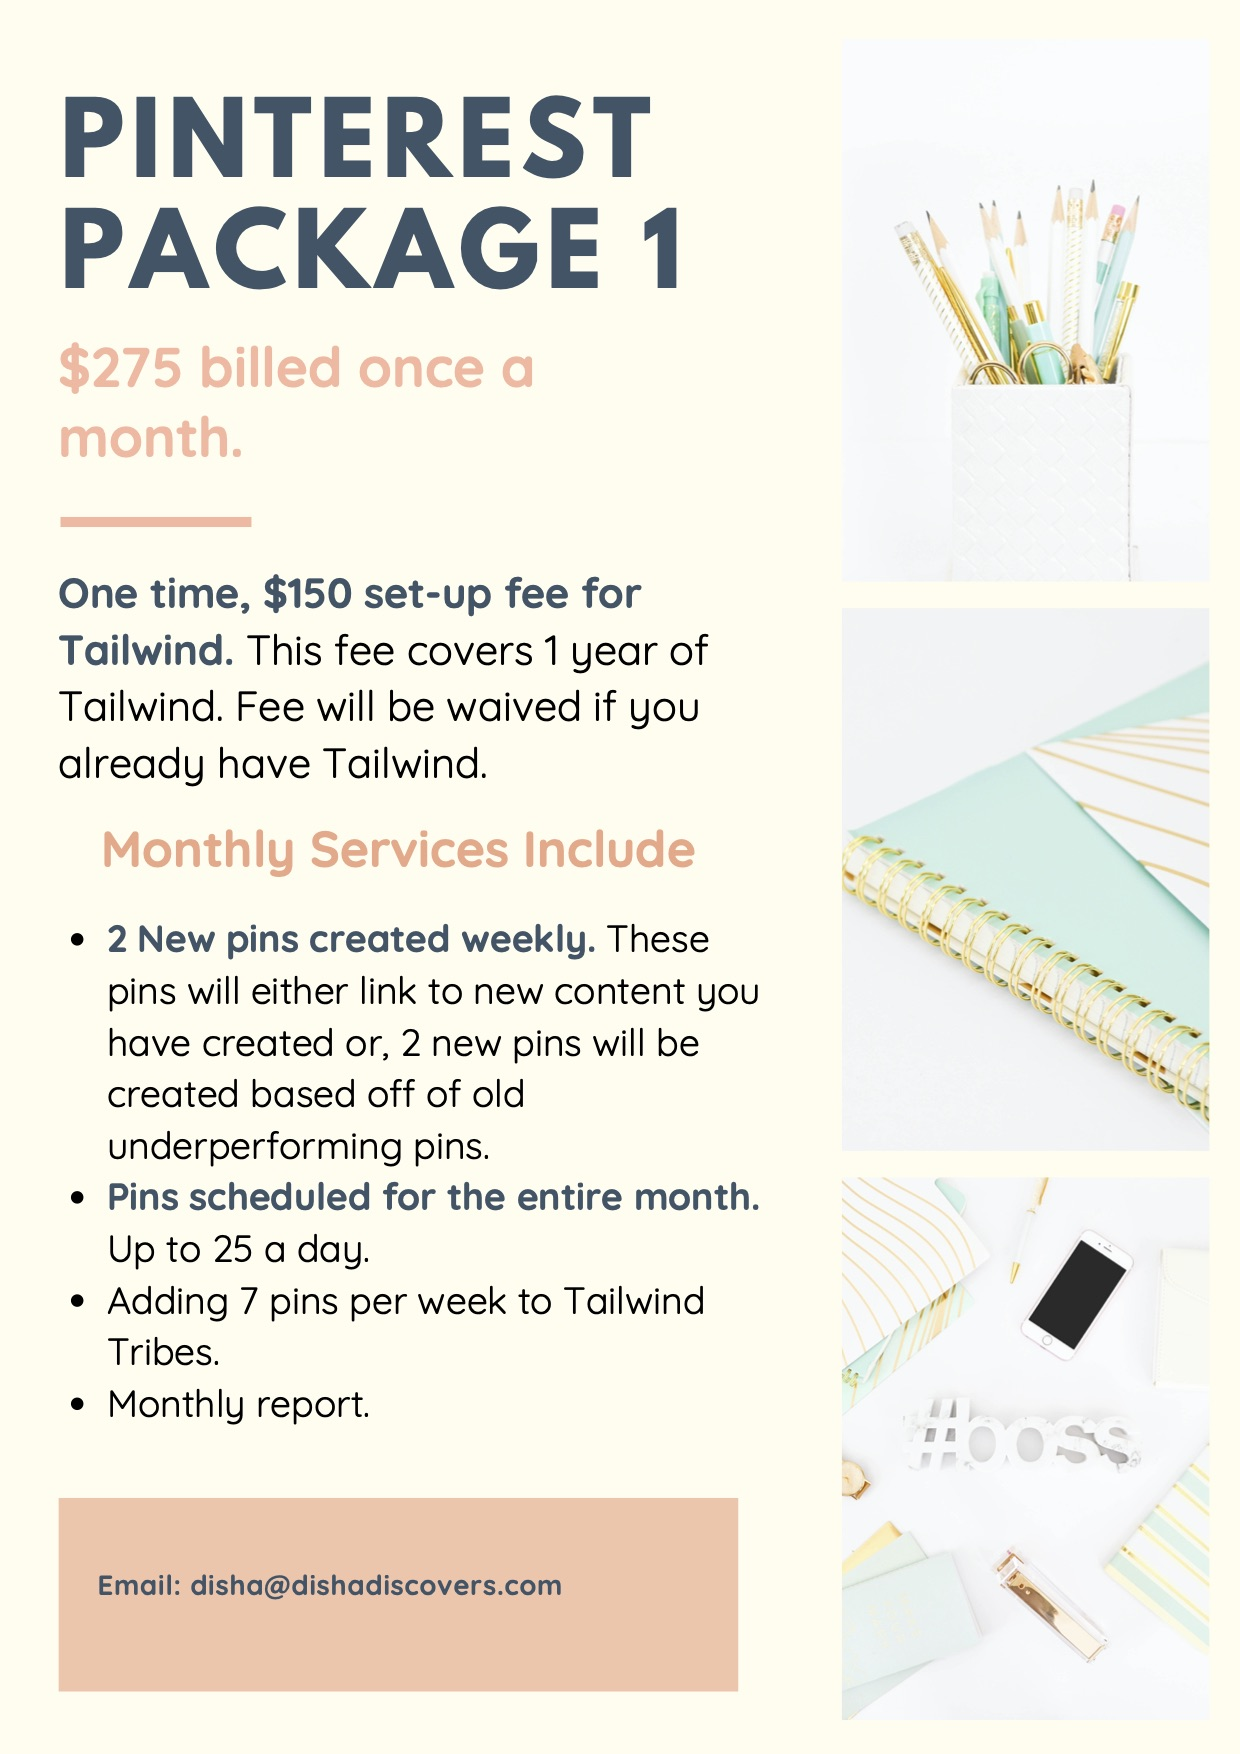 Pinterest Package 1